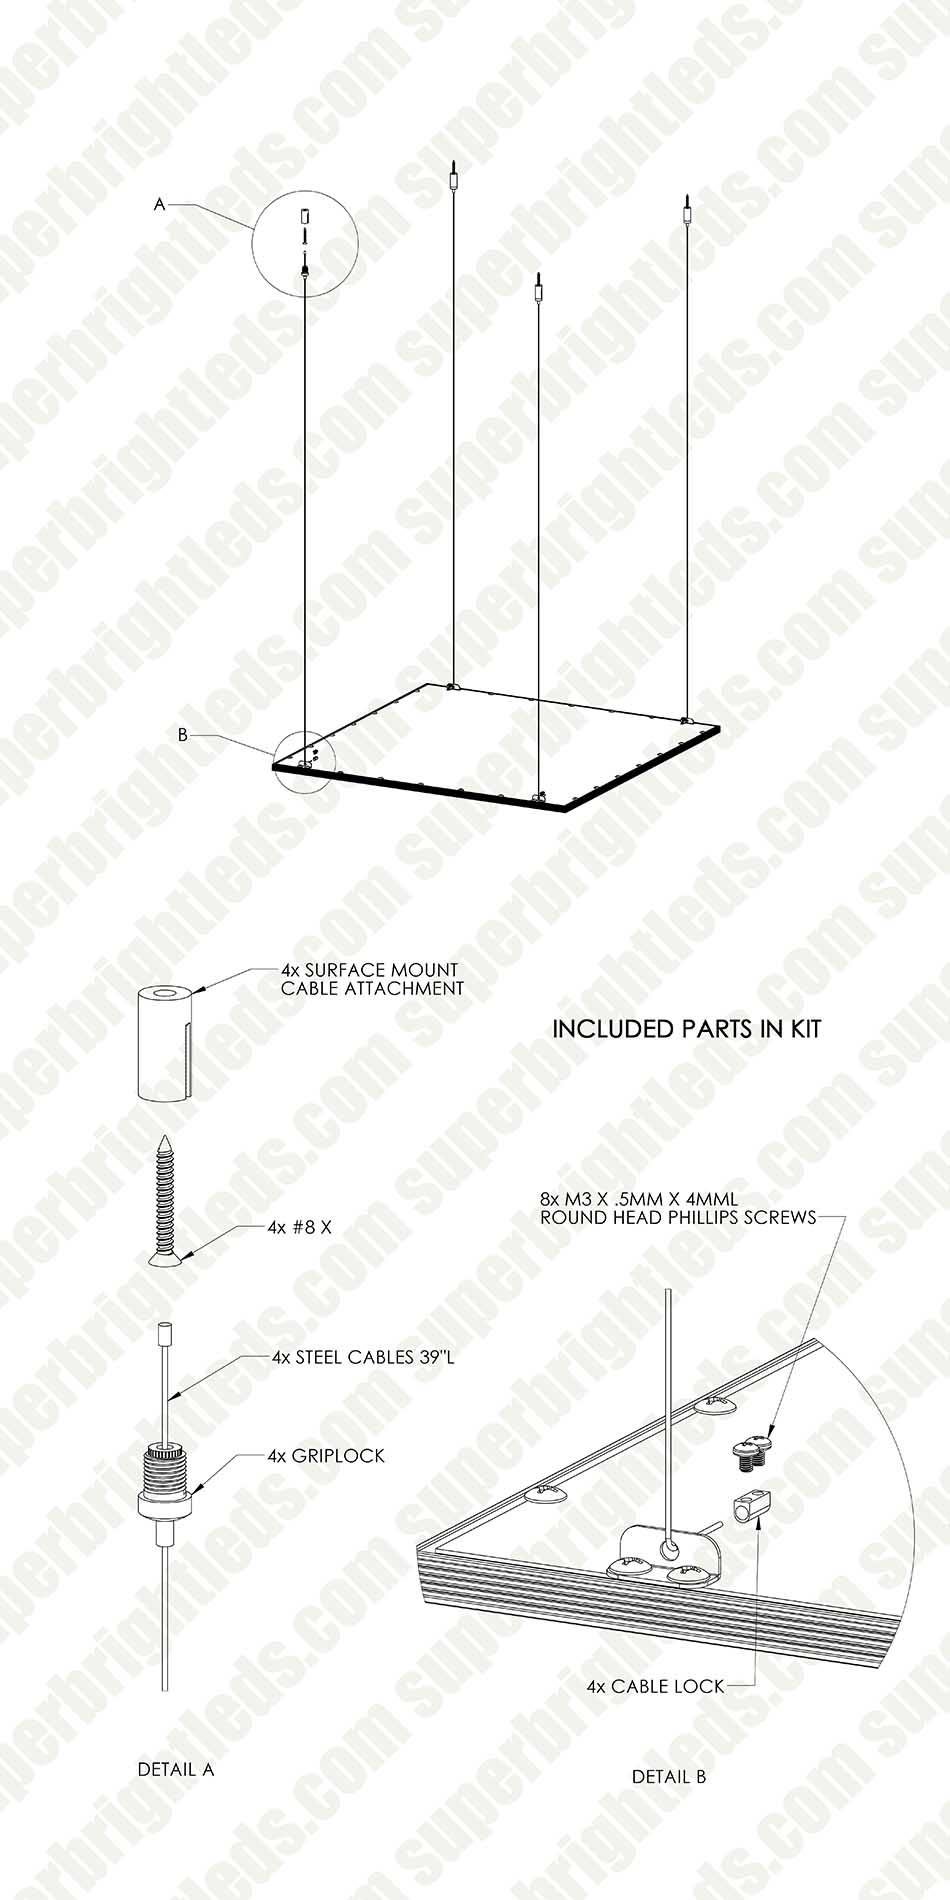 LED Panel Light Suspension Kit Mounting Hardware for LED Panels and Linear Fixtures